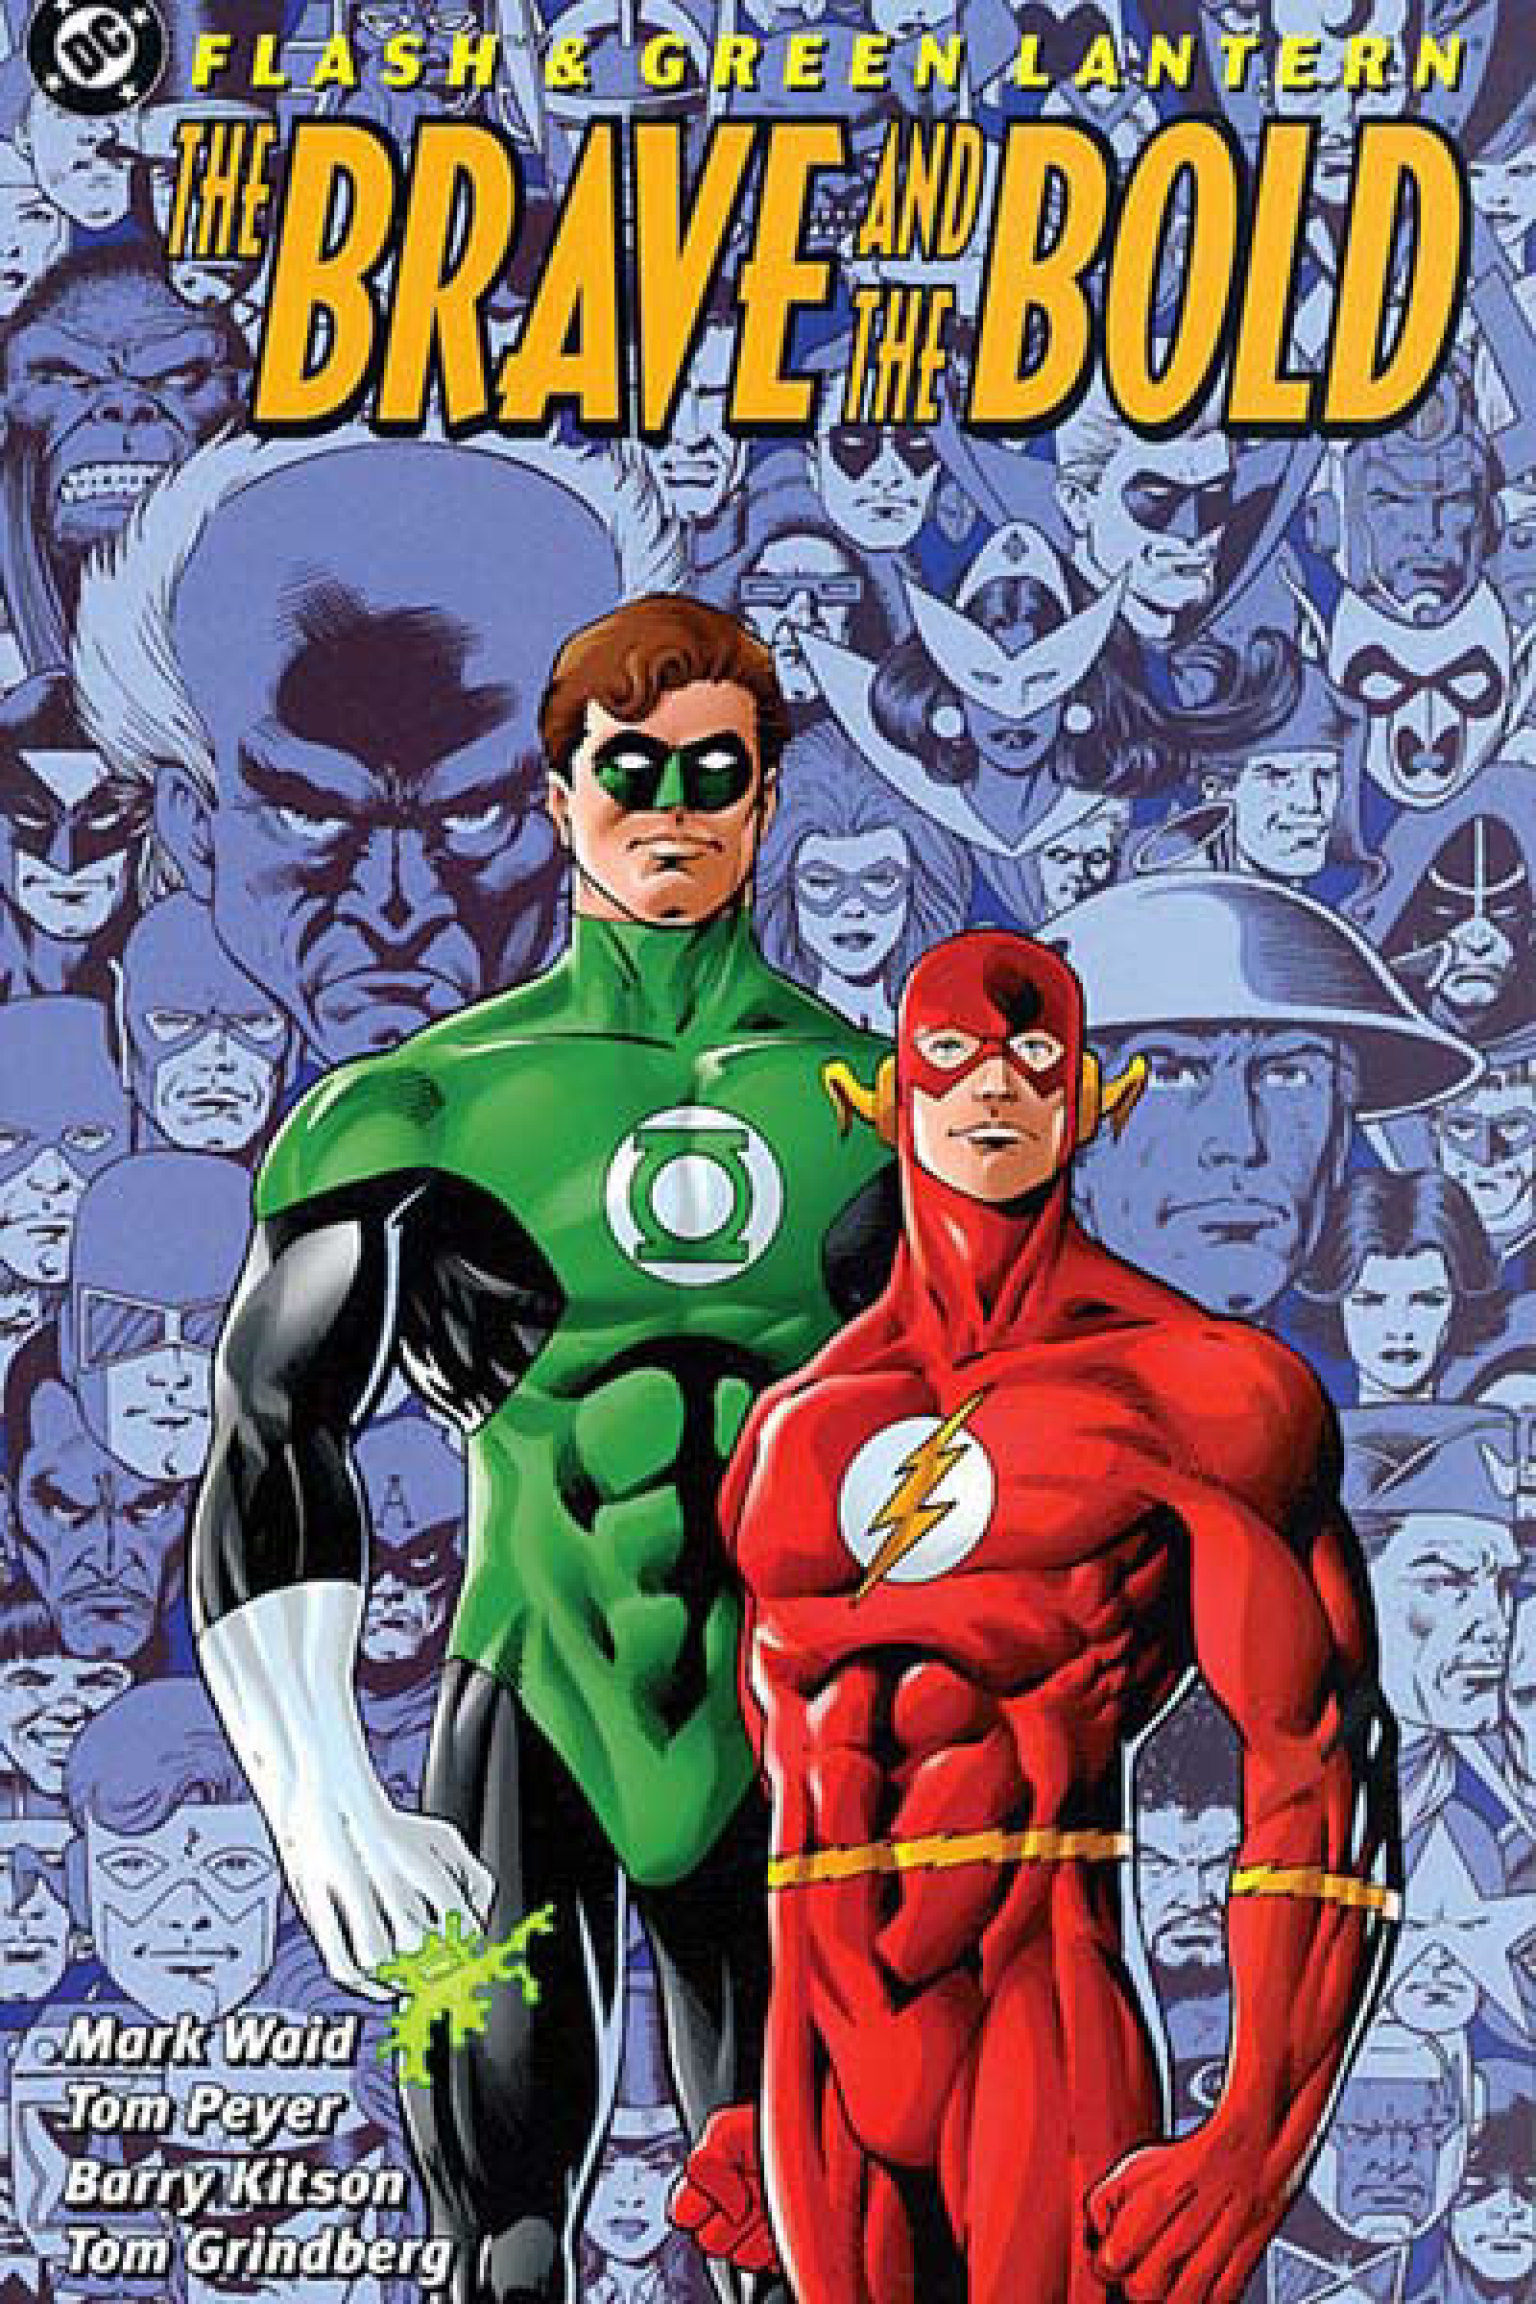 Critique de Flash & Green Lantern - The Brave And The Bold